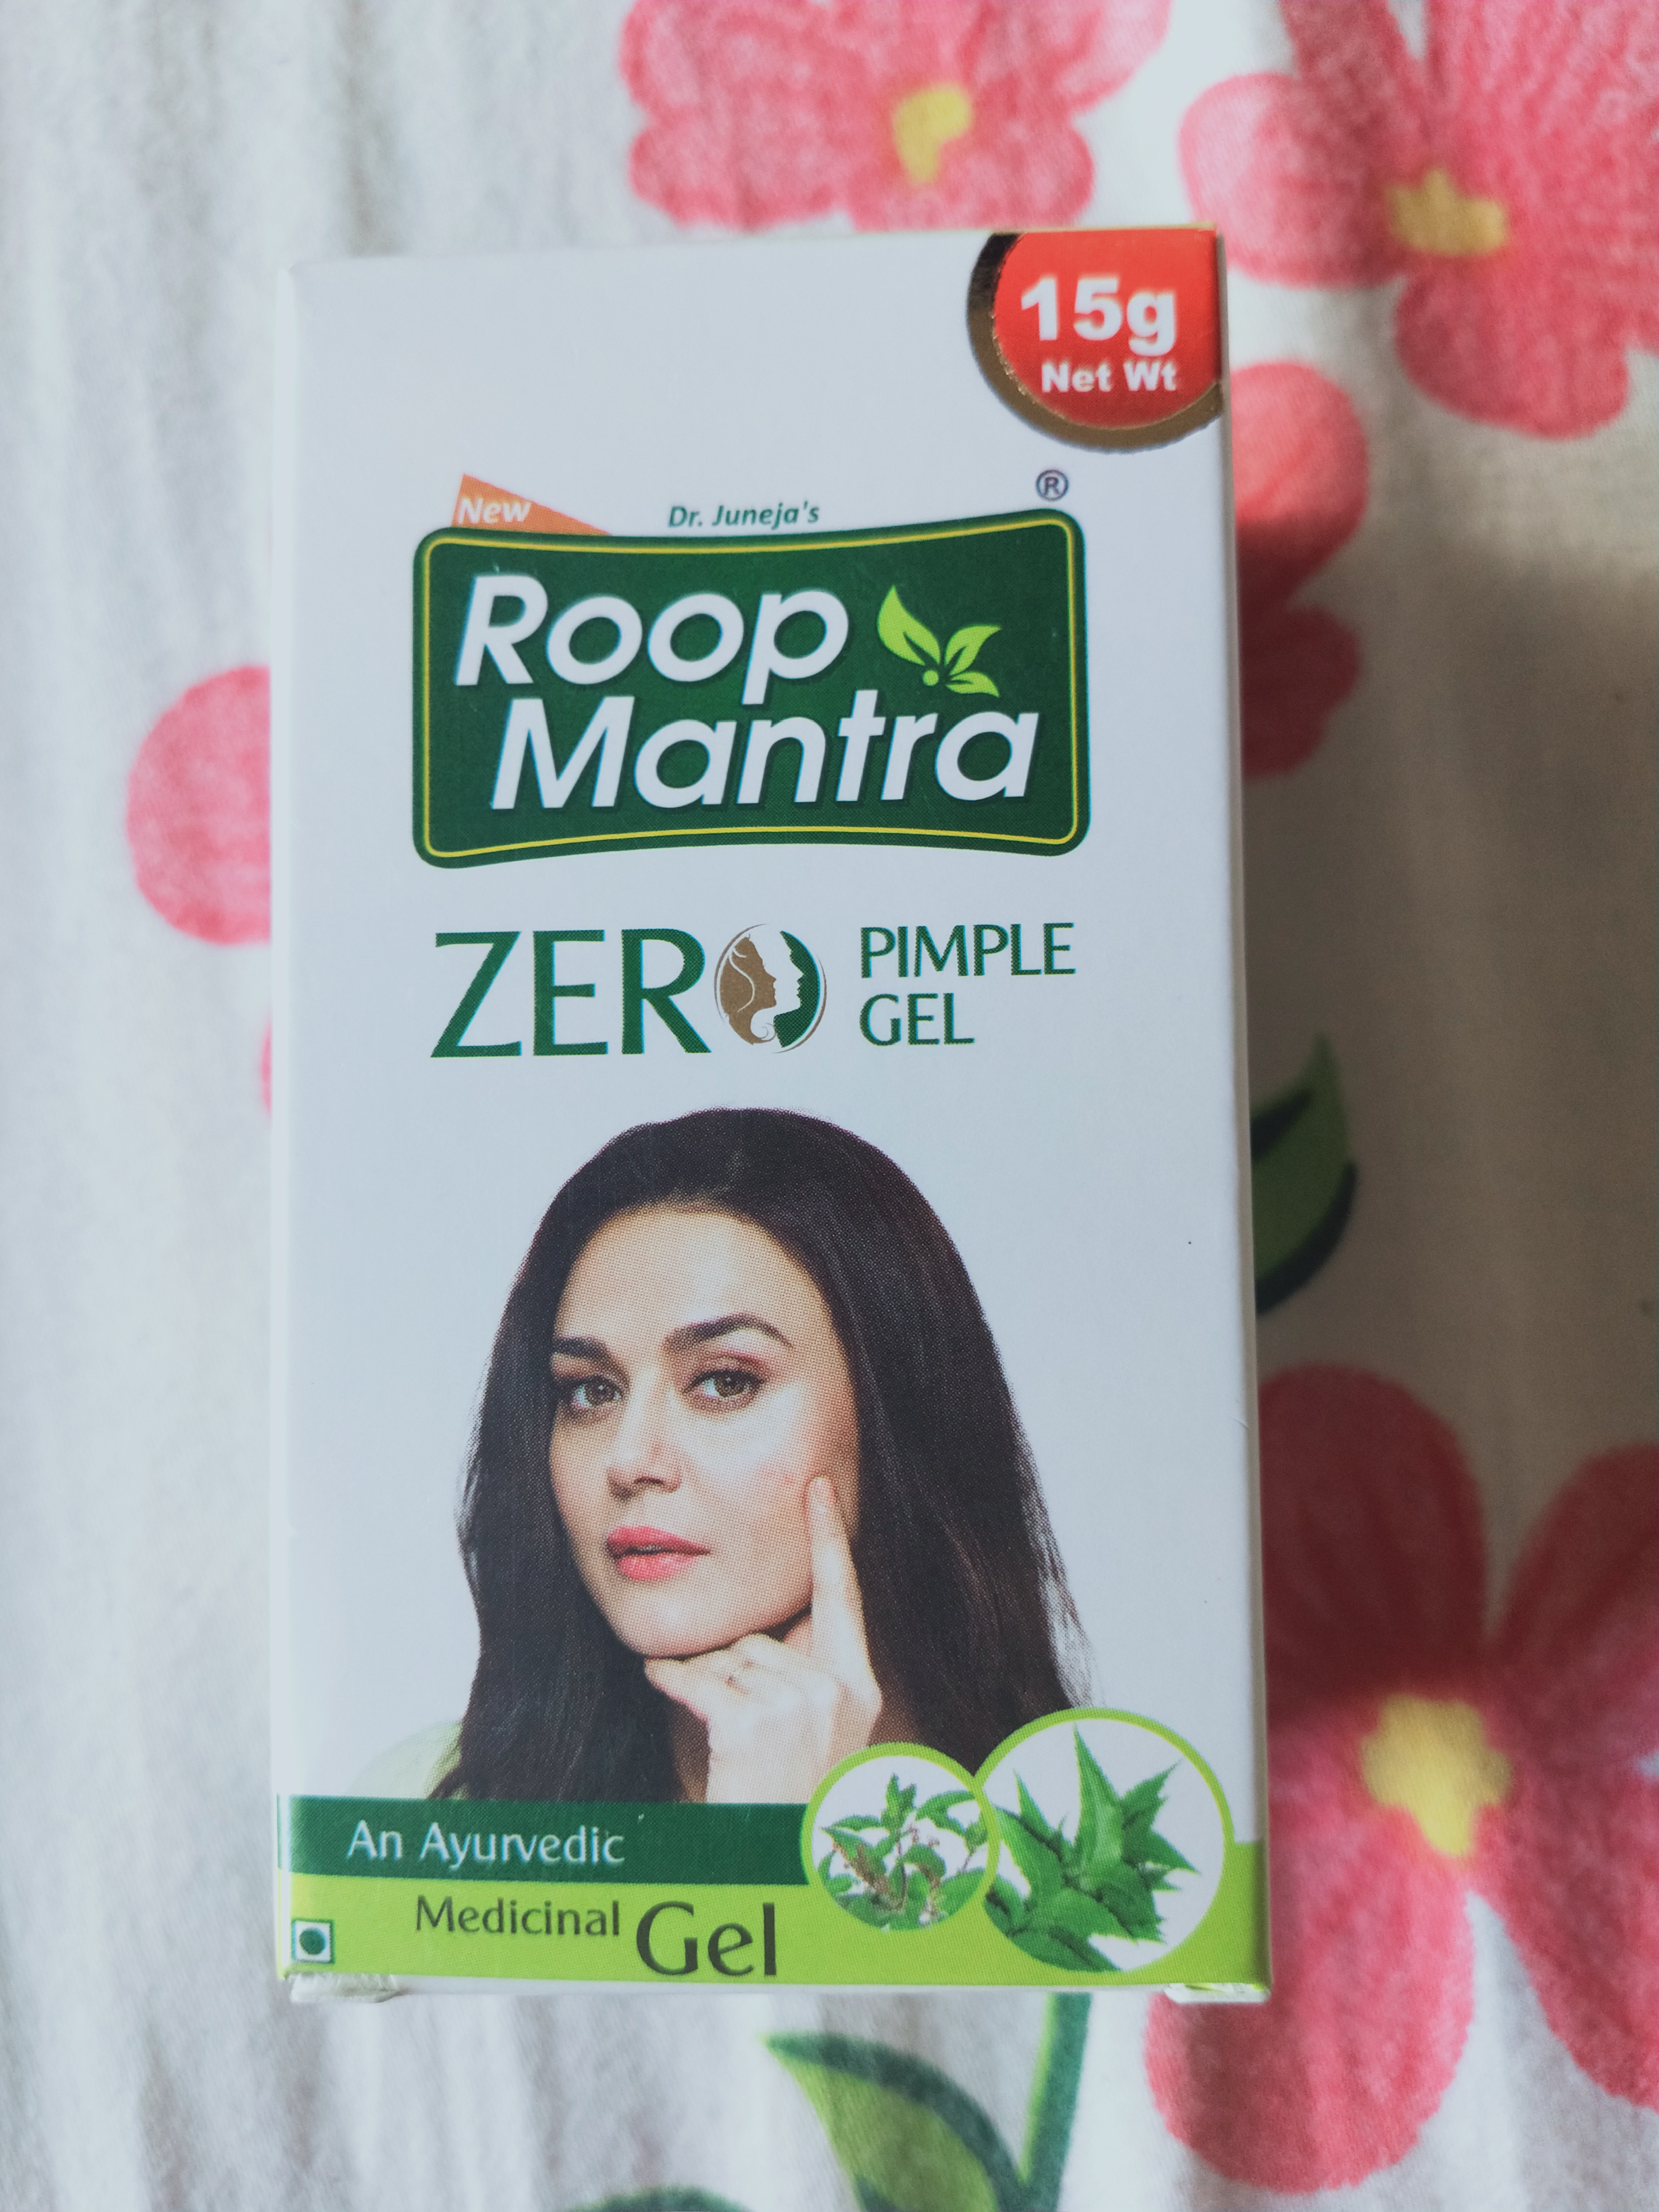 Roop Mantra Zero Pimple Gel-Effective gel to remove pimple-By anuja_pundir